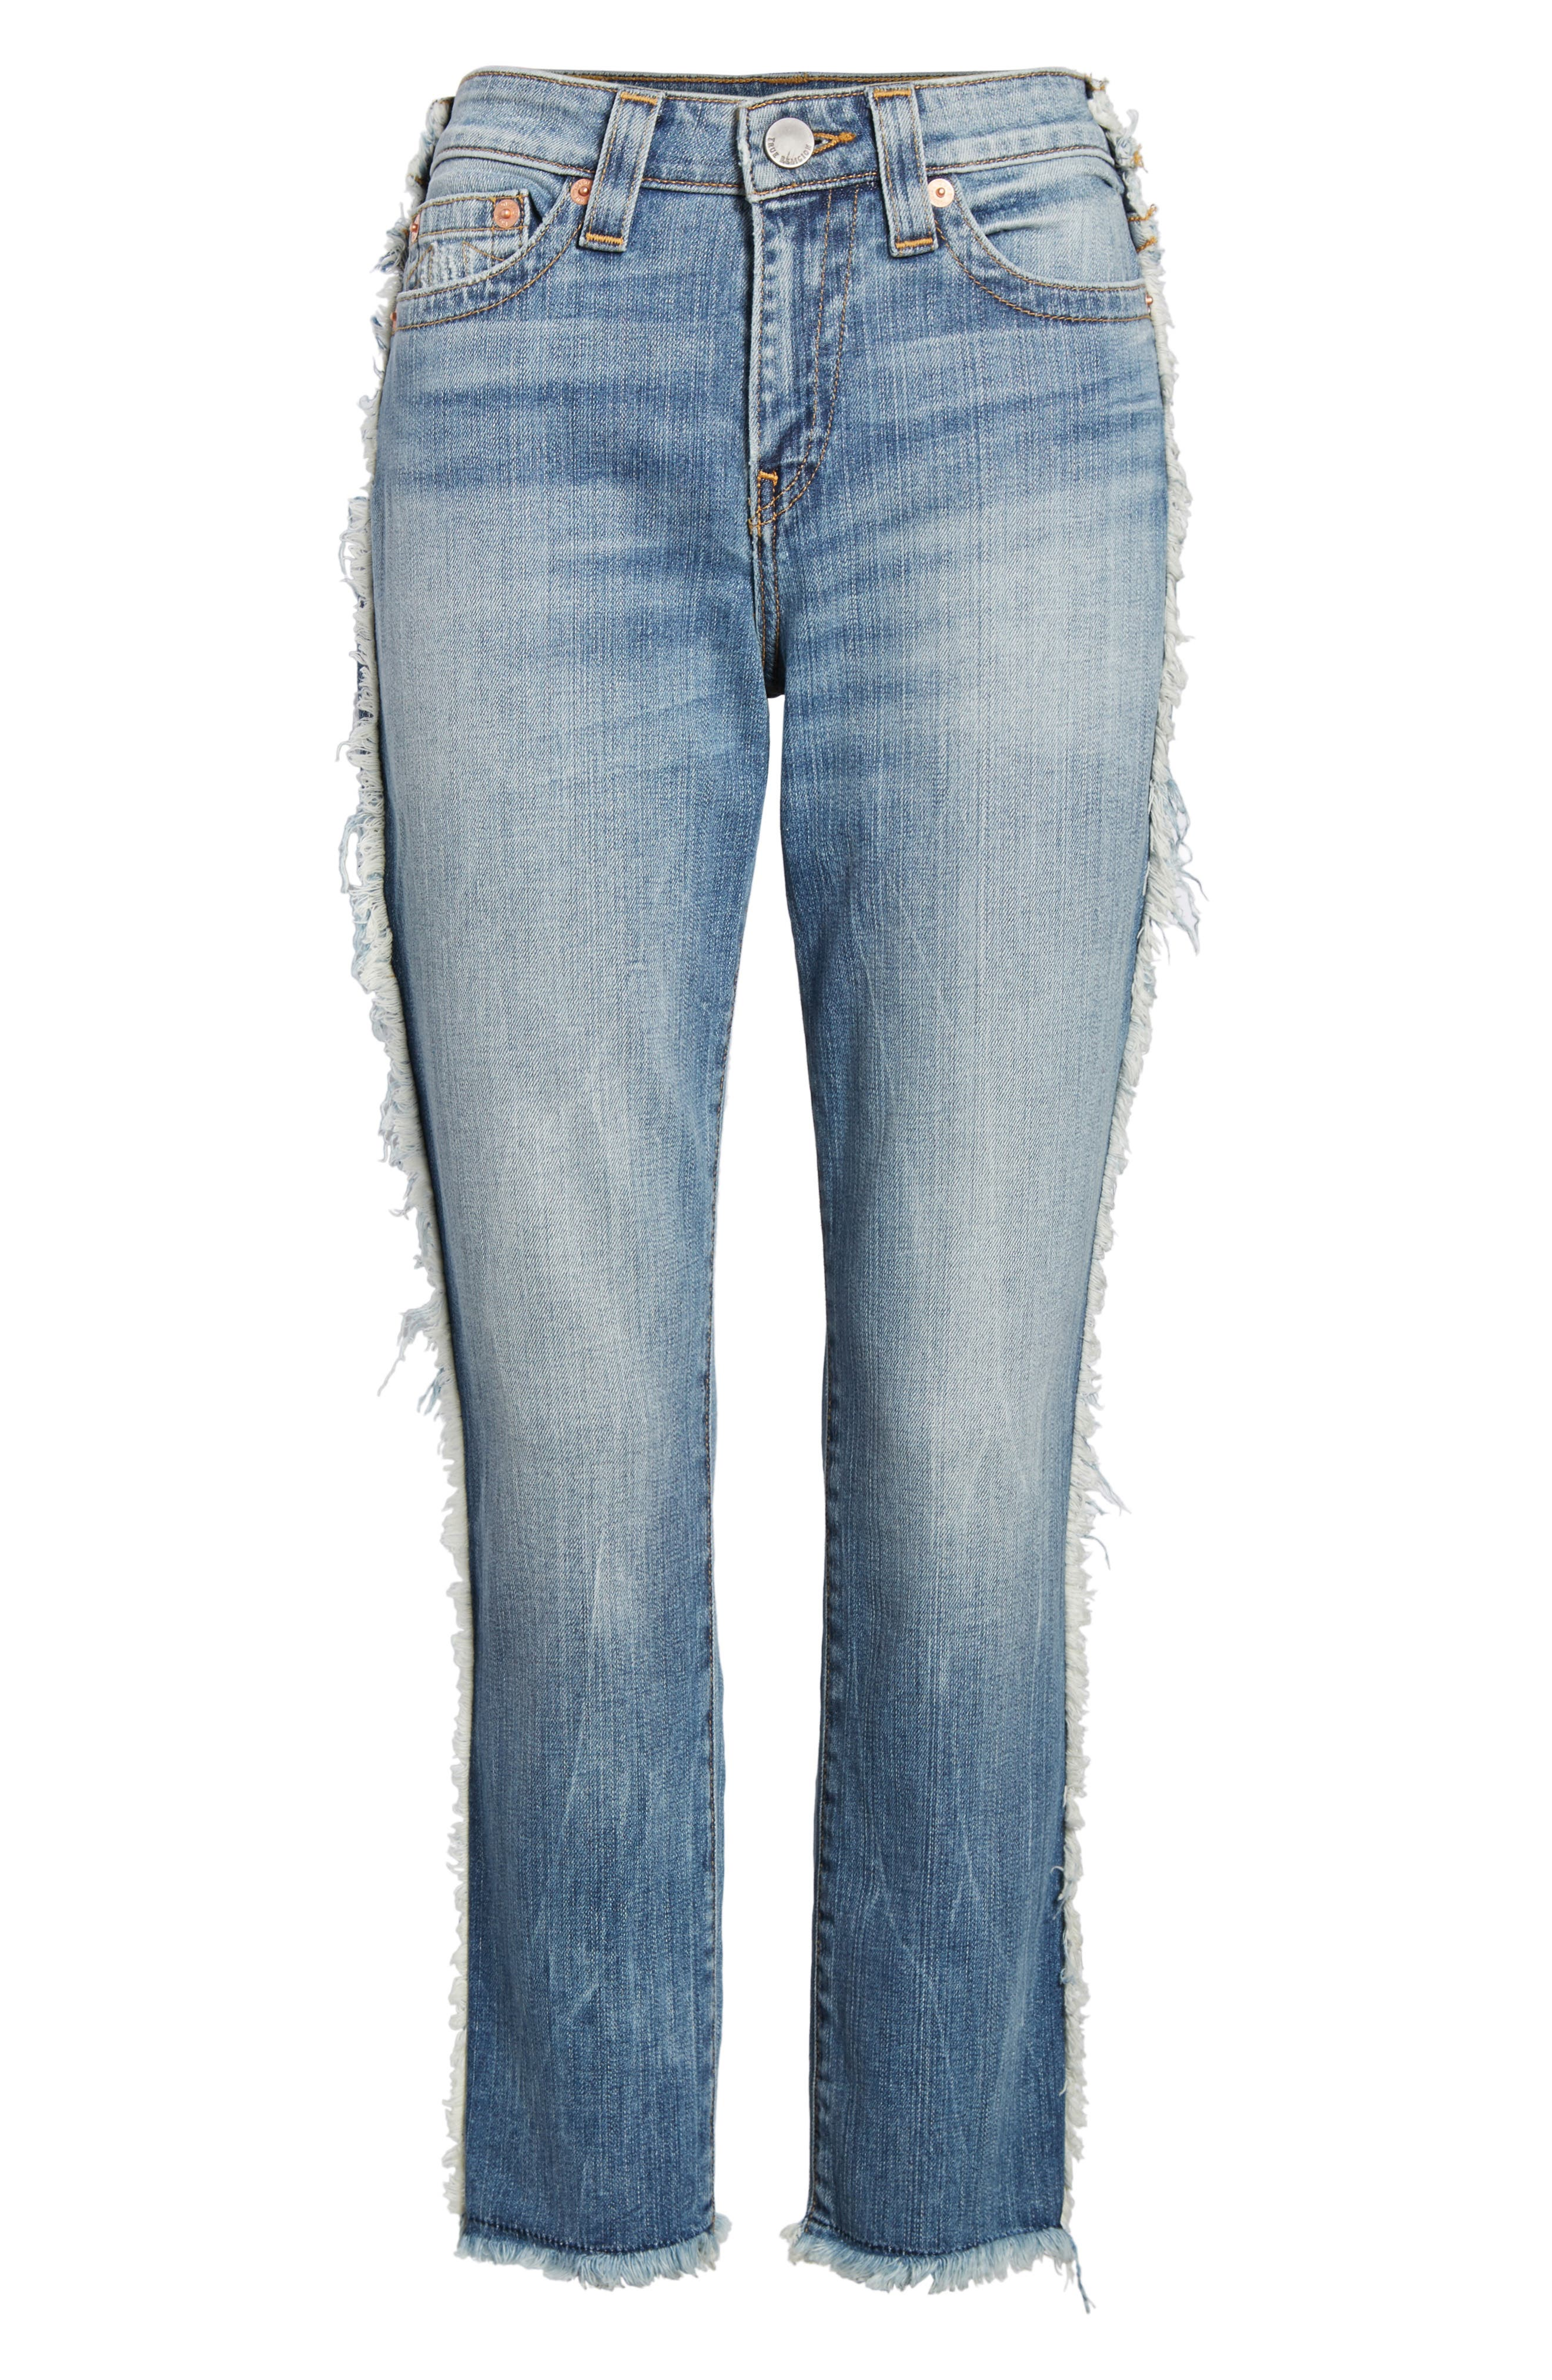 Colette High Waist Tapered Skinny Jeans,                             Alternate thumbnail 7, color,                             401